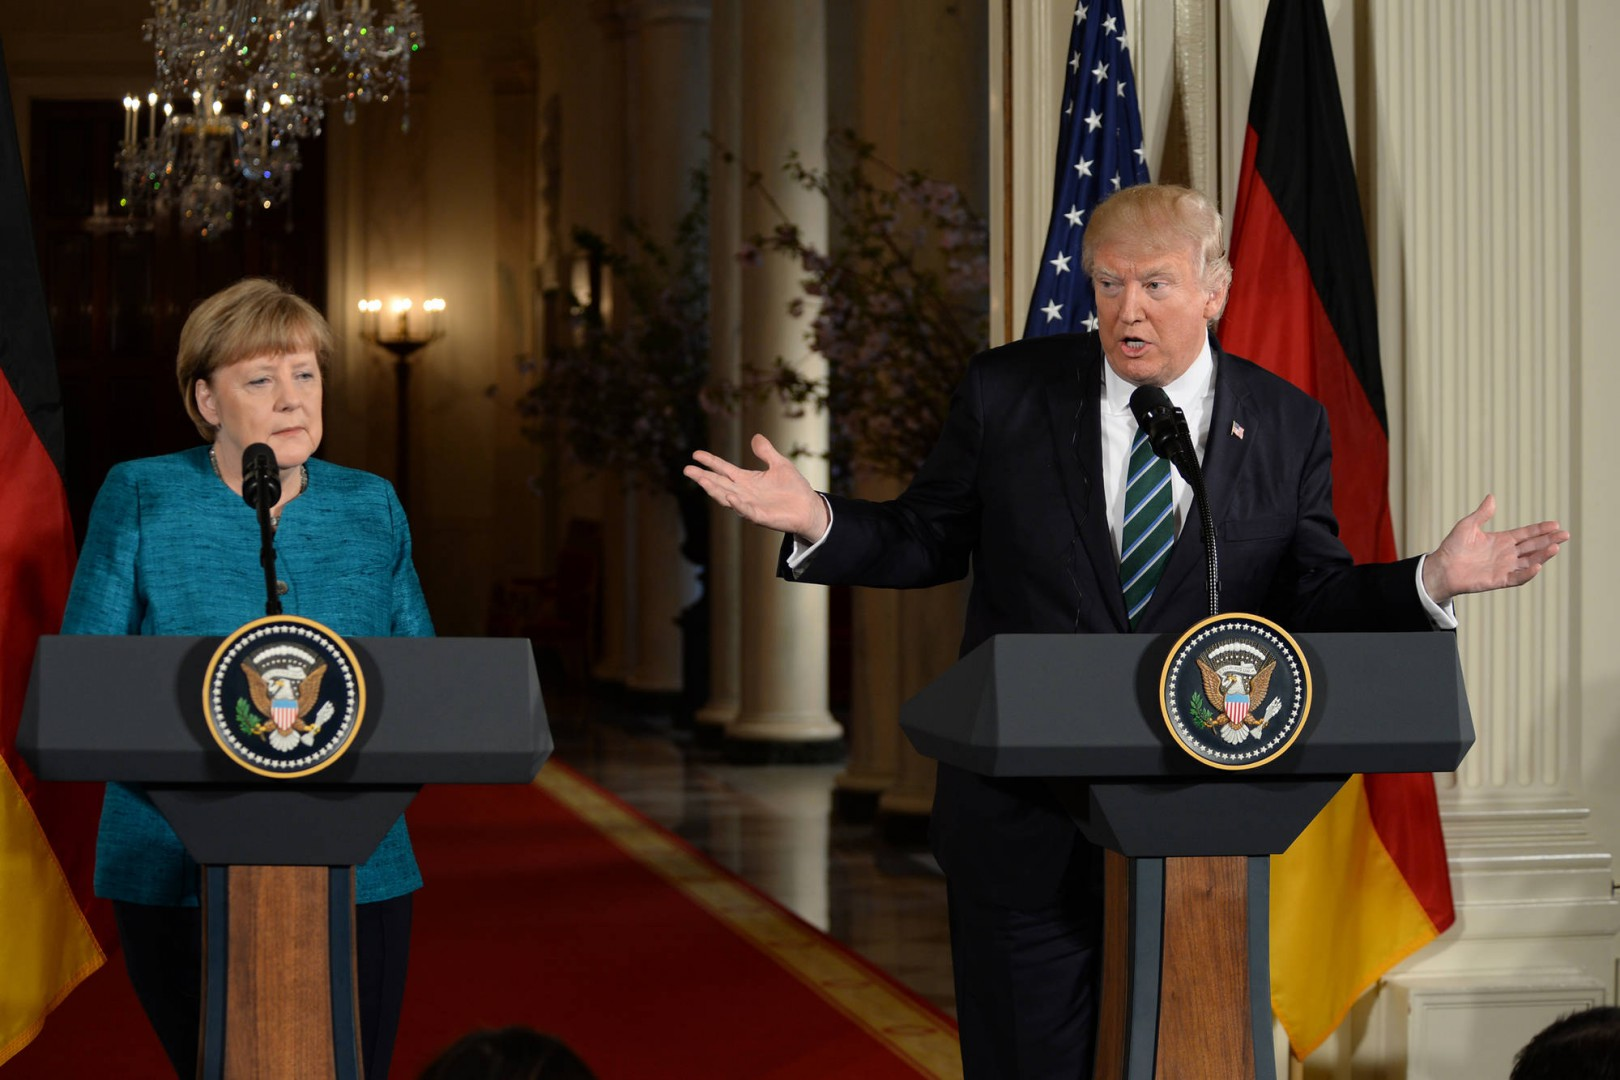 MARCH 17, 2017, WASHINGTON, DISTRICT OF COLUMBIA, U.S., MARCH 17, 2017- THE WHITE HOUSE- WASHINGTON DC..PRESIDENT DONALD TRUMP WELCOMES GERMAN CHANCELLOR ANGELA MERKEL TO THE WHITE HOUSE. TRUMP AND MERKEL HOLD A JOINT PRESS CONFERENCE...PHOTOS BY: , IMAGECATCHER NEWS (CREDIT IMAGE: (C) CHRISTY BOWE/GLOBE PHOTOS VIA ZUMA WIRE) ZSELECT, DSC_5457.JPG, ZWIRE, ZUMAPRESS.COM, THEPICTURESOFTHEDAY.COM, ZAGENCY, ZGLOBE, ZLAST24, 20170317_ZAF_BW2_025.JPG, 20170317_ZAF_BW2_025.JPG